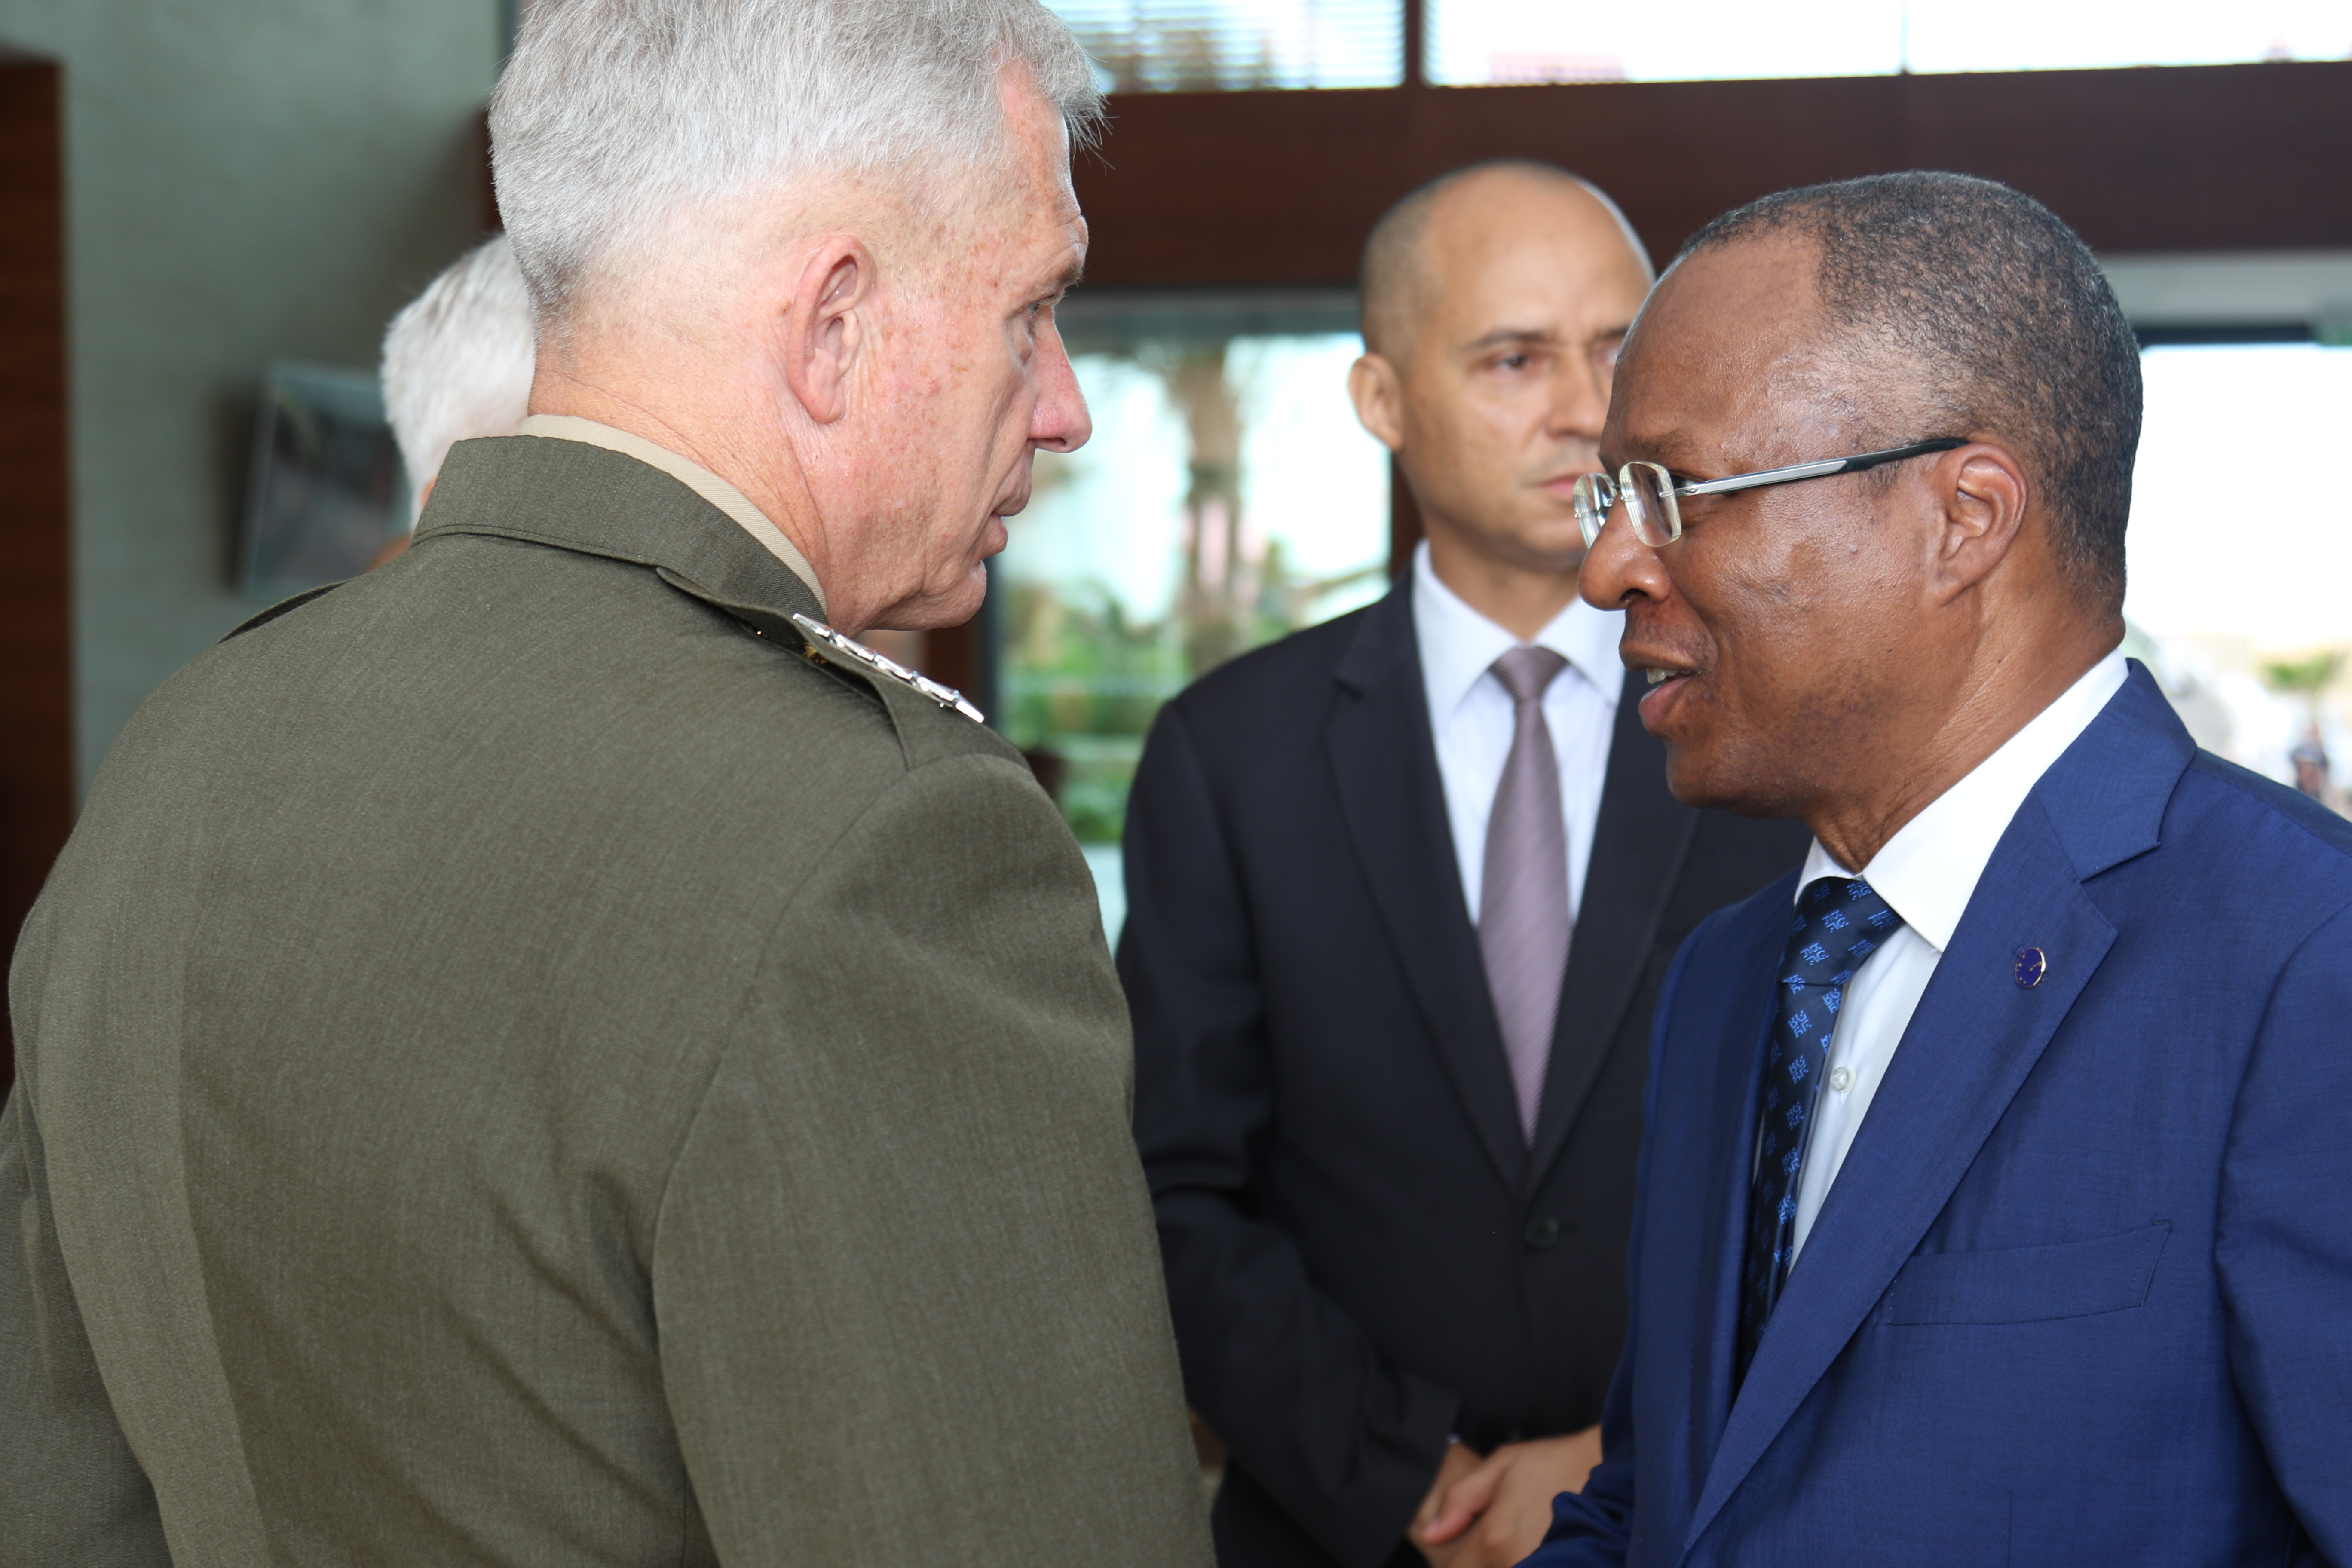 U.S. Marine Corps Gen. Thomas D. Waldhauser shakes hands with Dr. Ulisses Correia e Silva, Cabo Verde Prime Minister after the opening ceremony of Africa Endeavor 2018 July 30, 2018 in Santa Maria, Sal, Cabo Verde.